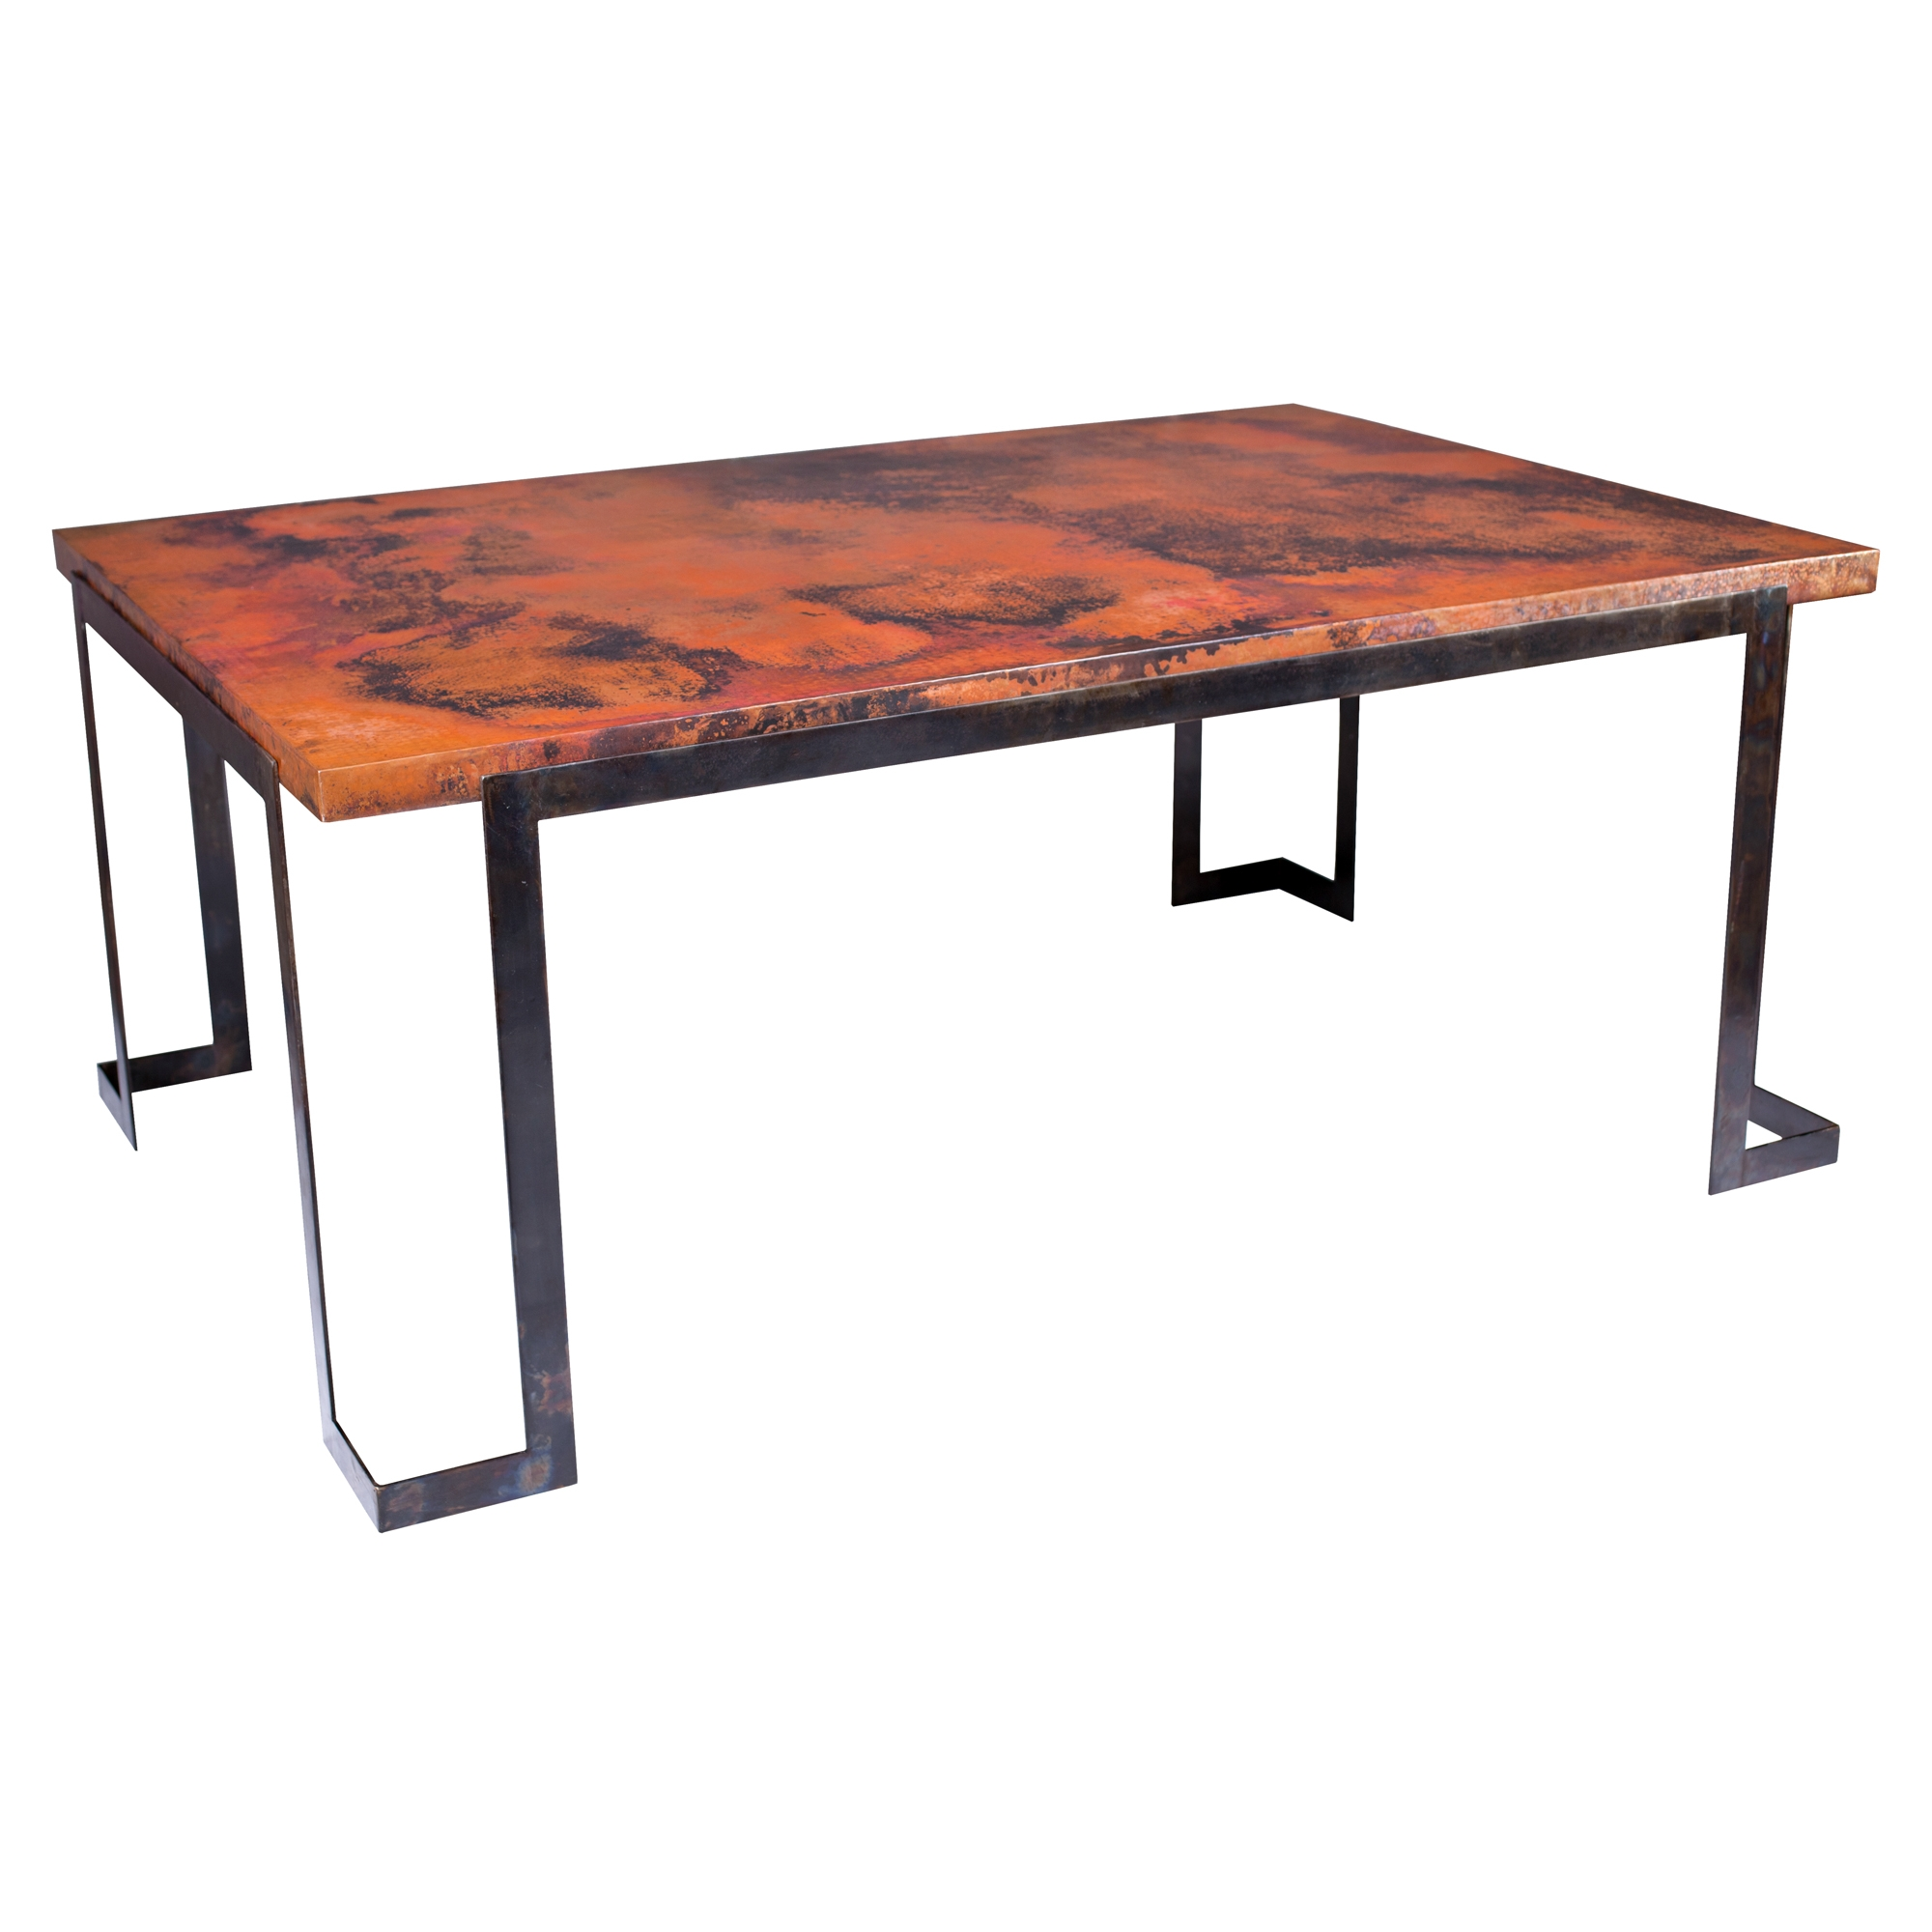 Copper Top Rectangular Coffee Table: Steel Strap Rectangle Dining Table With Hammered Copper Top